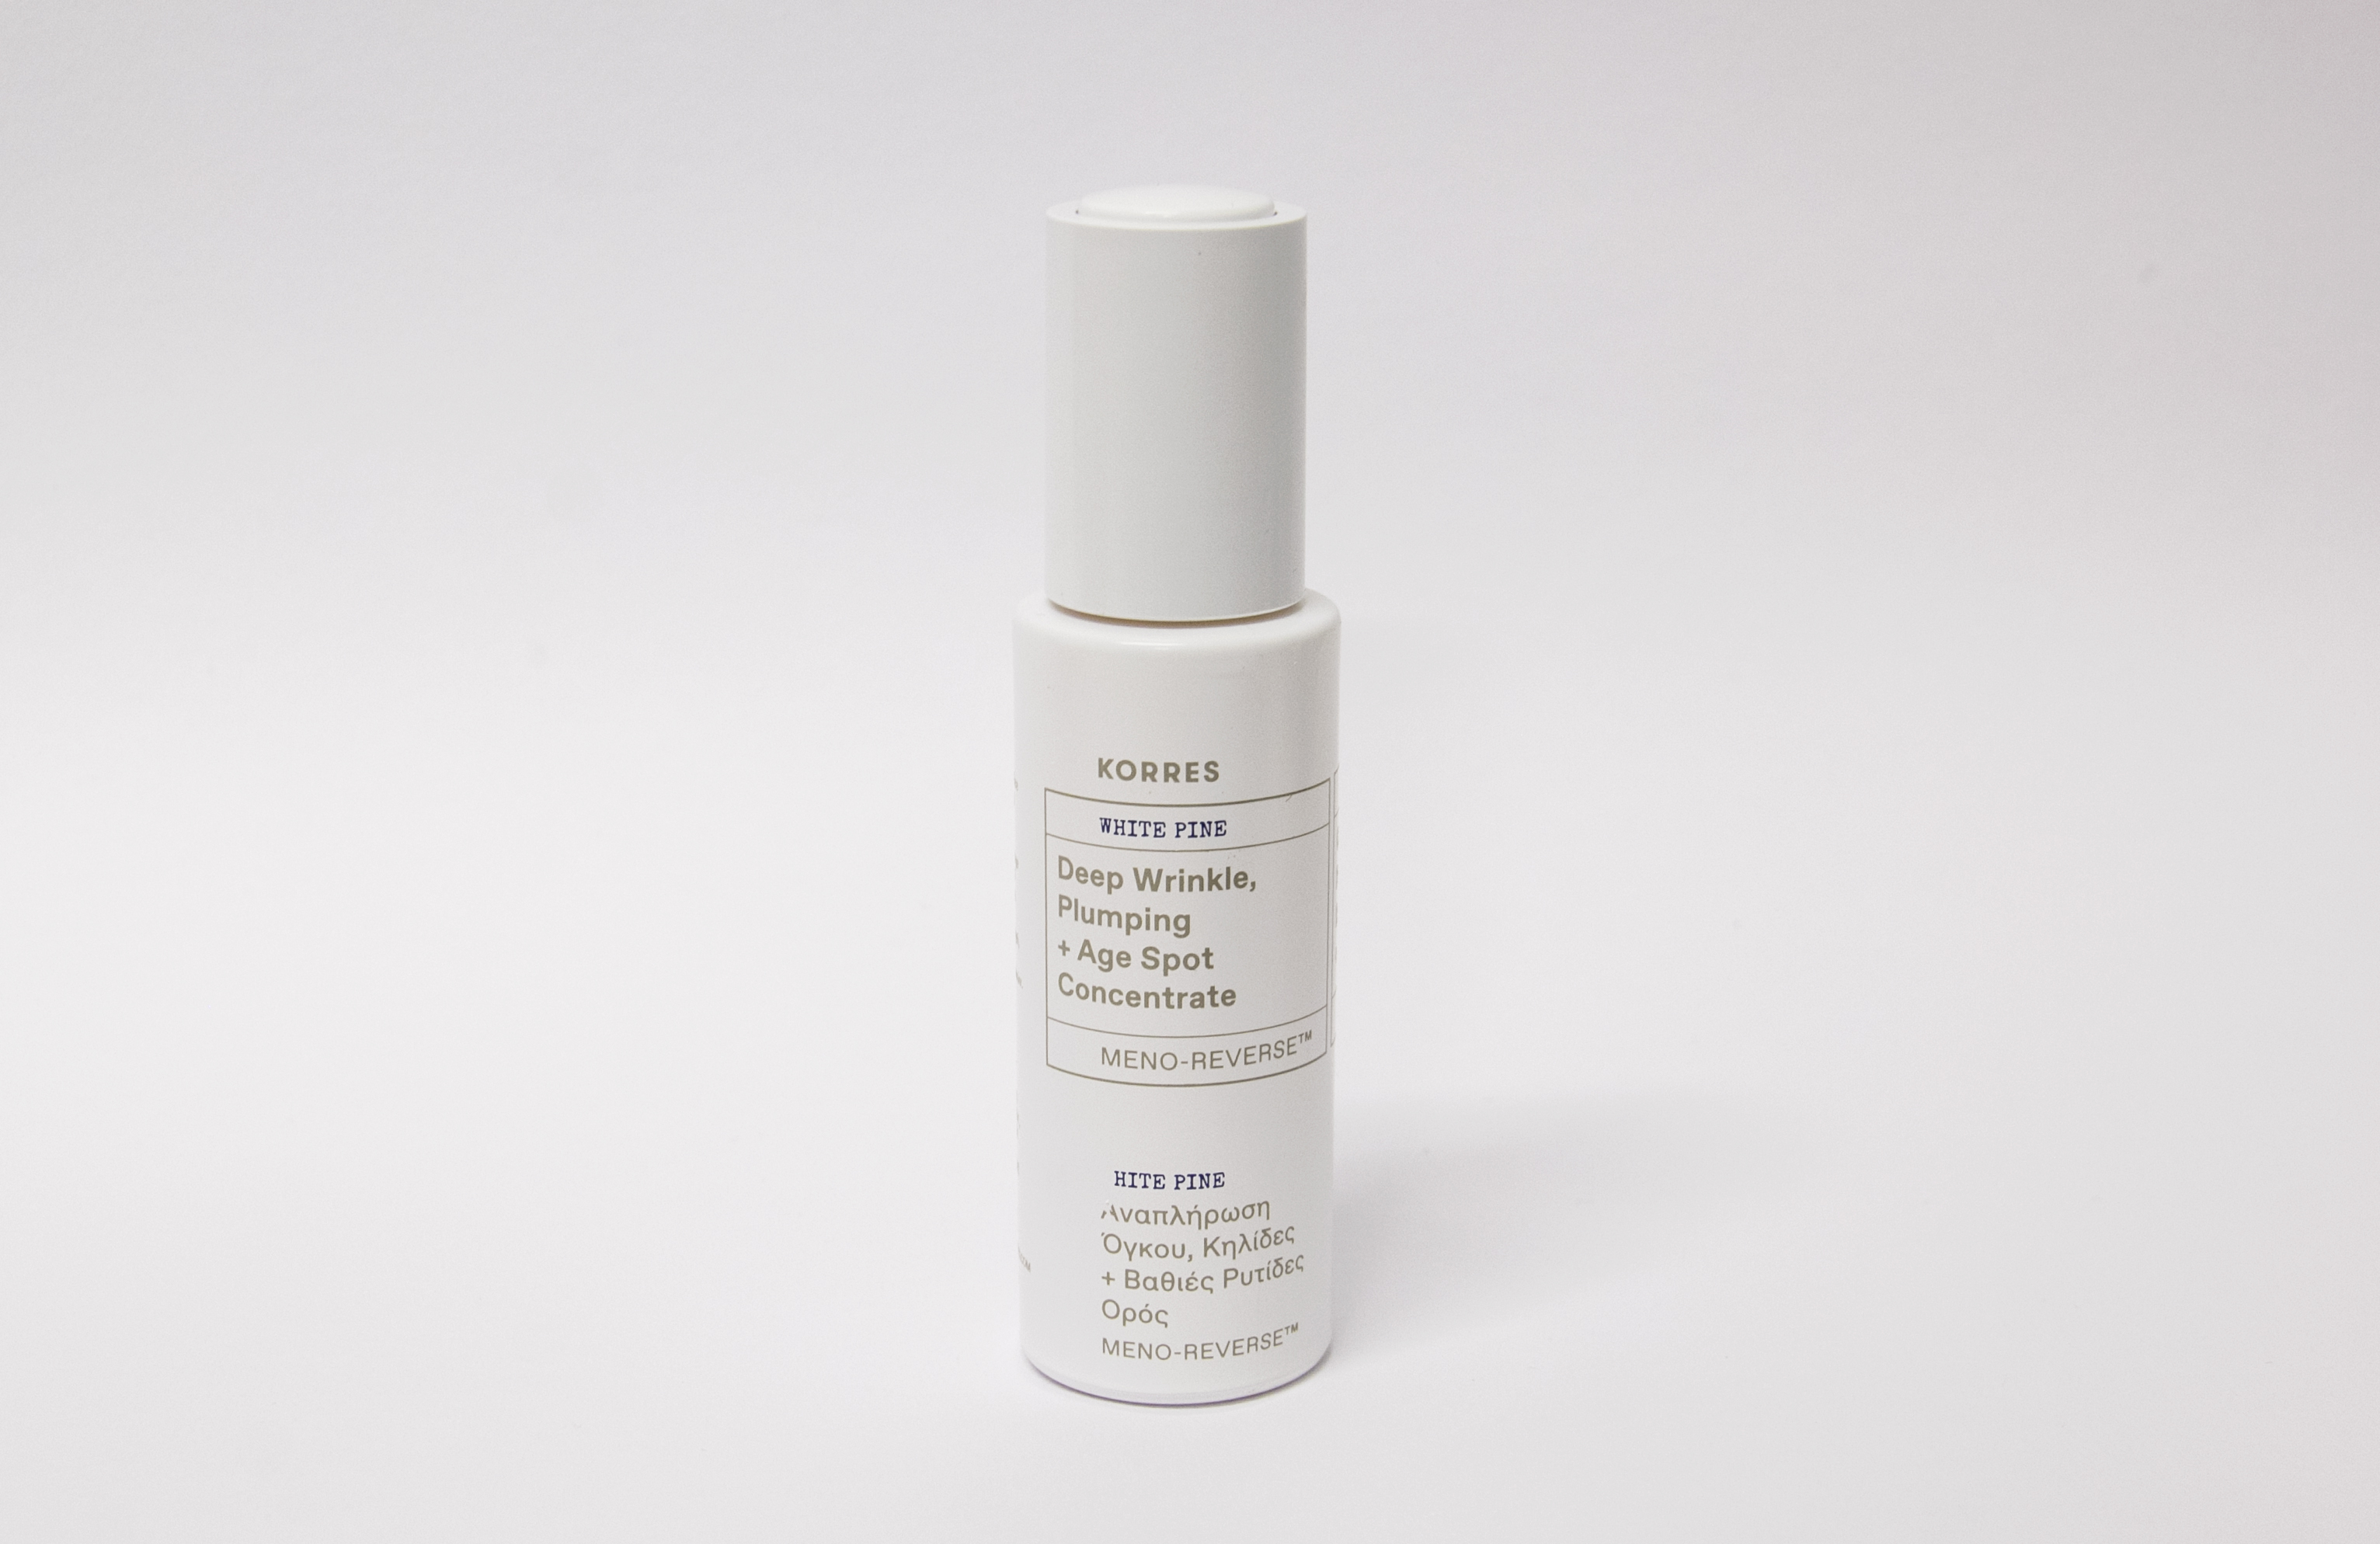 Korres' Deep Wrinkle Plumping + Age Spot Concentrate